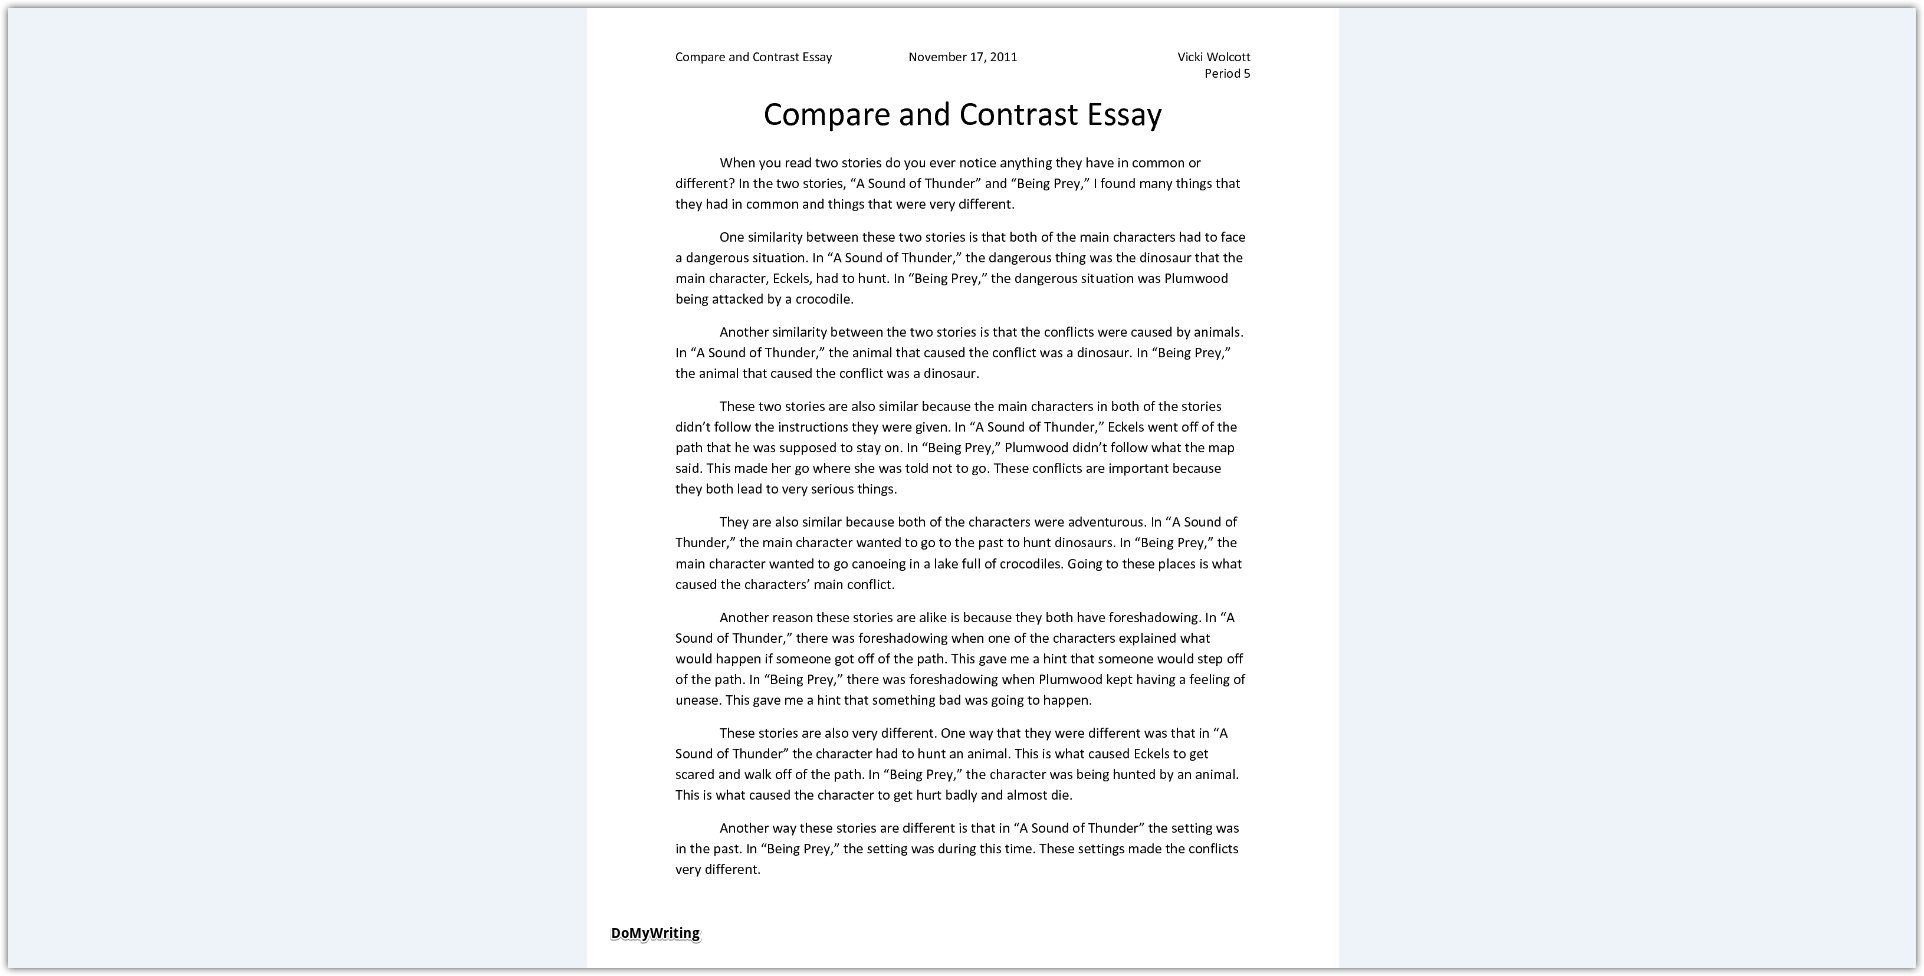 guided writing a winning compare and contrast essay compare and contrast essay outline place order  view sample